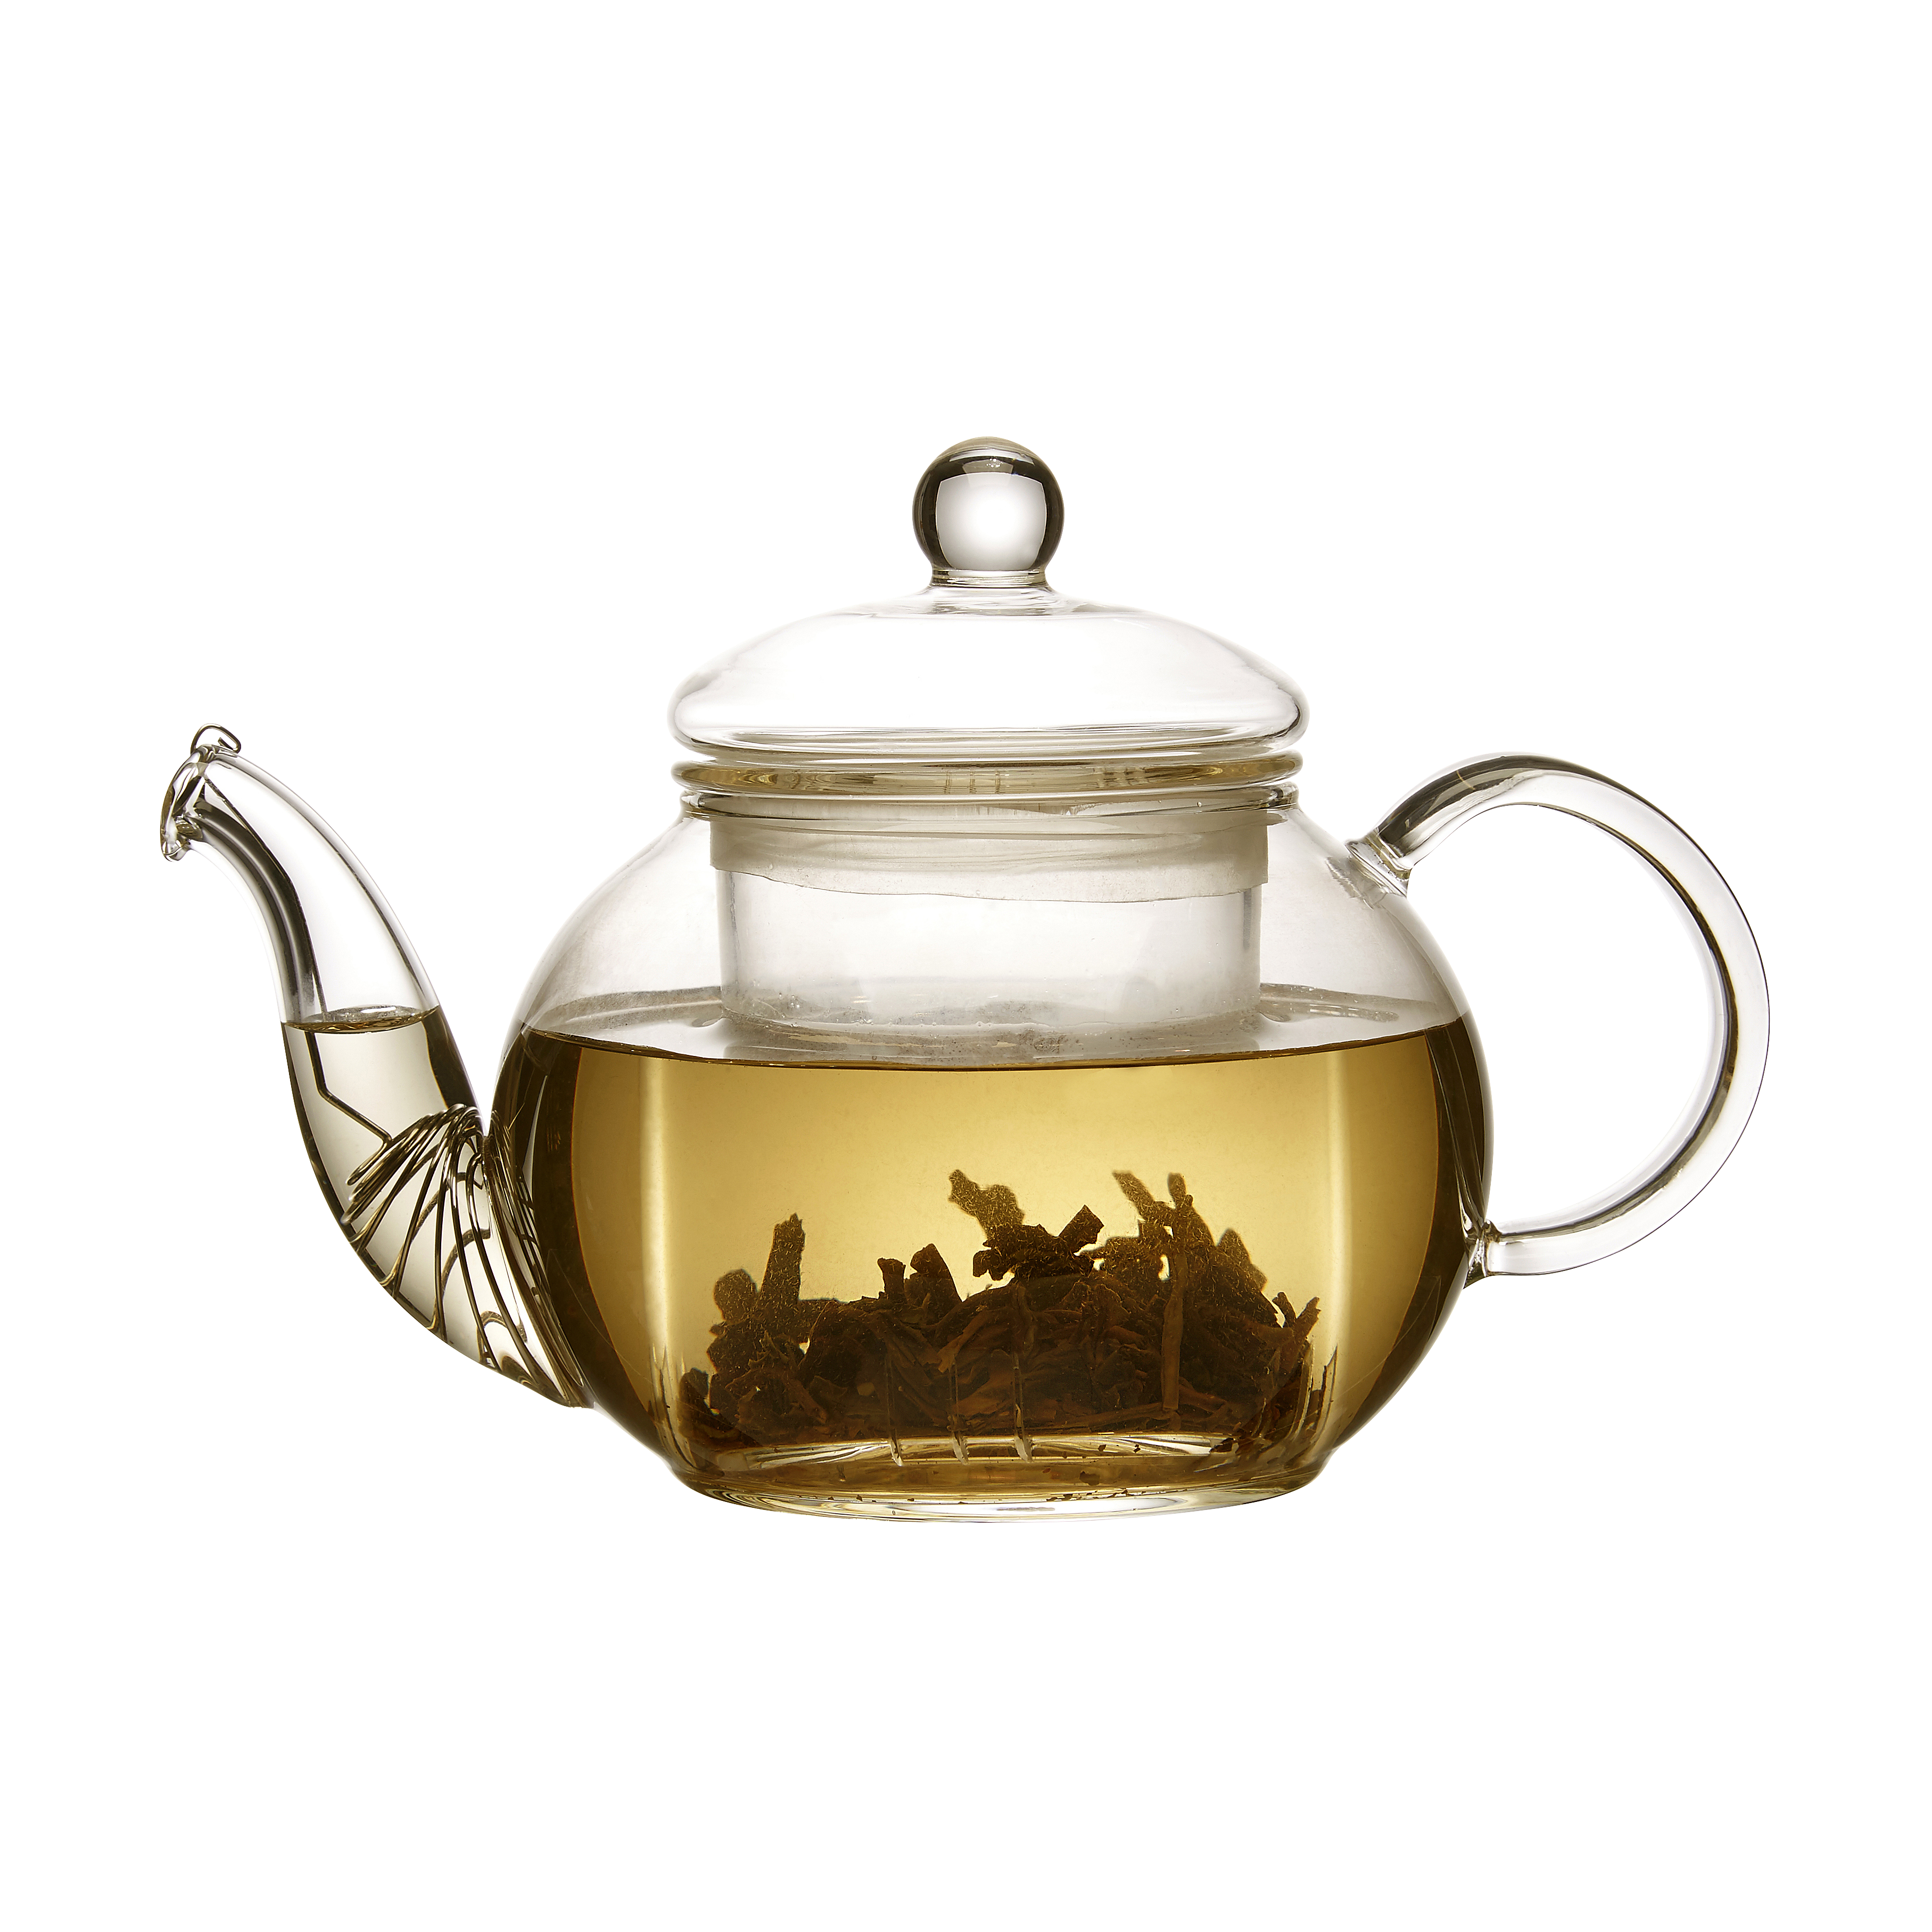 Transparent teapot luxury glass. This classic is perfect